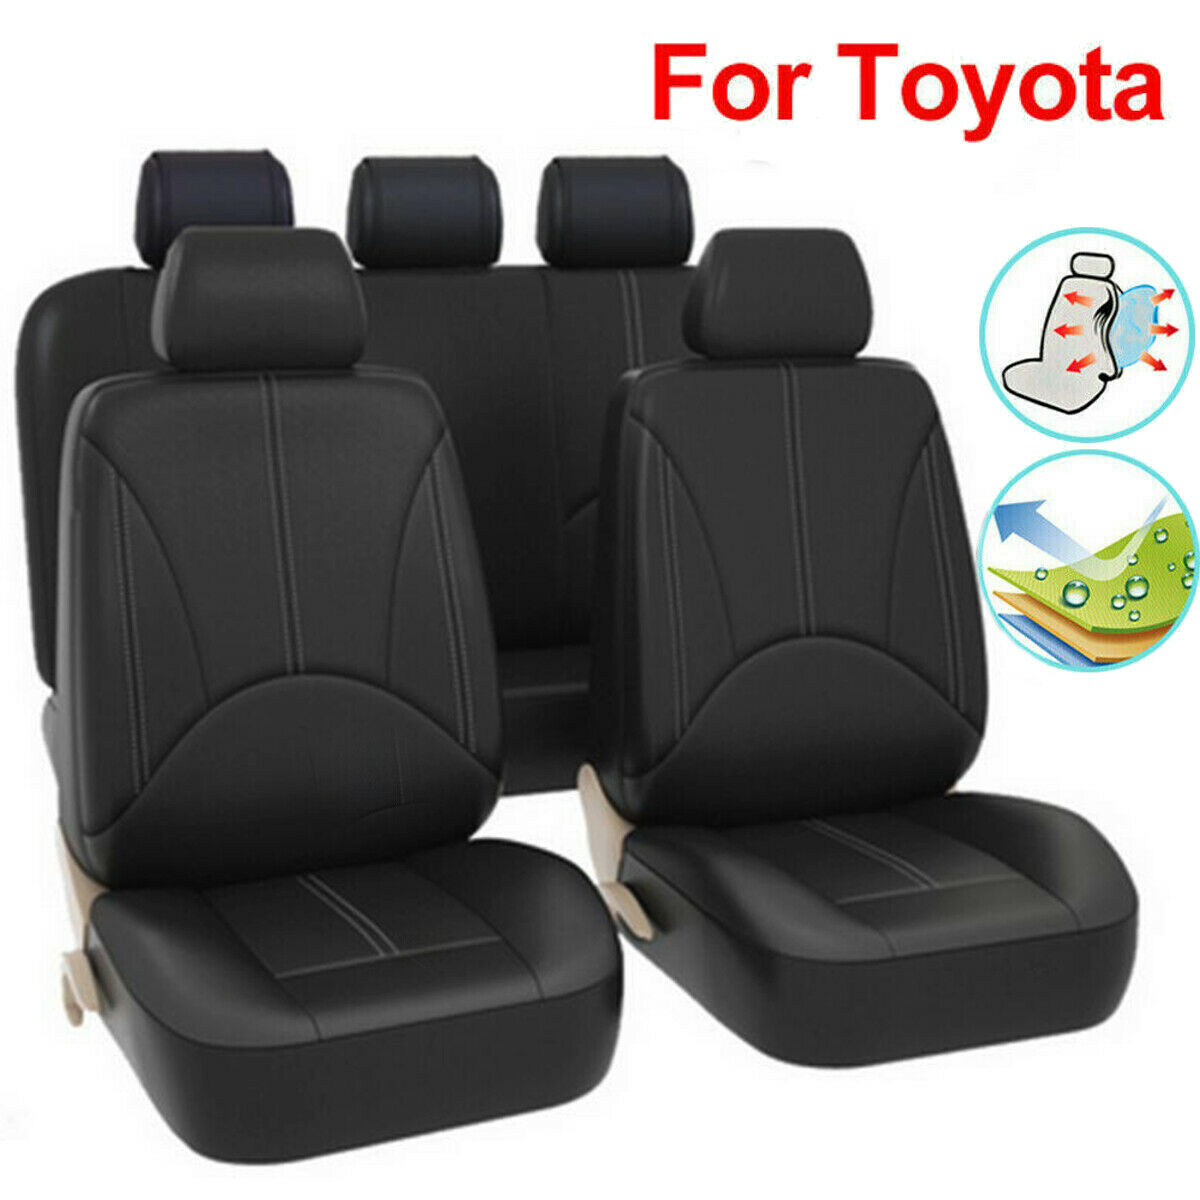 PU Leather Car Interior Seat Cover Black For Toyota RAV4 4runner For Yaris Venza